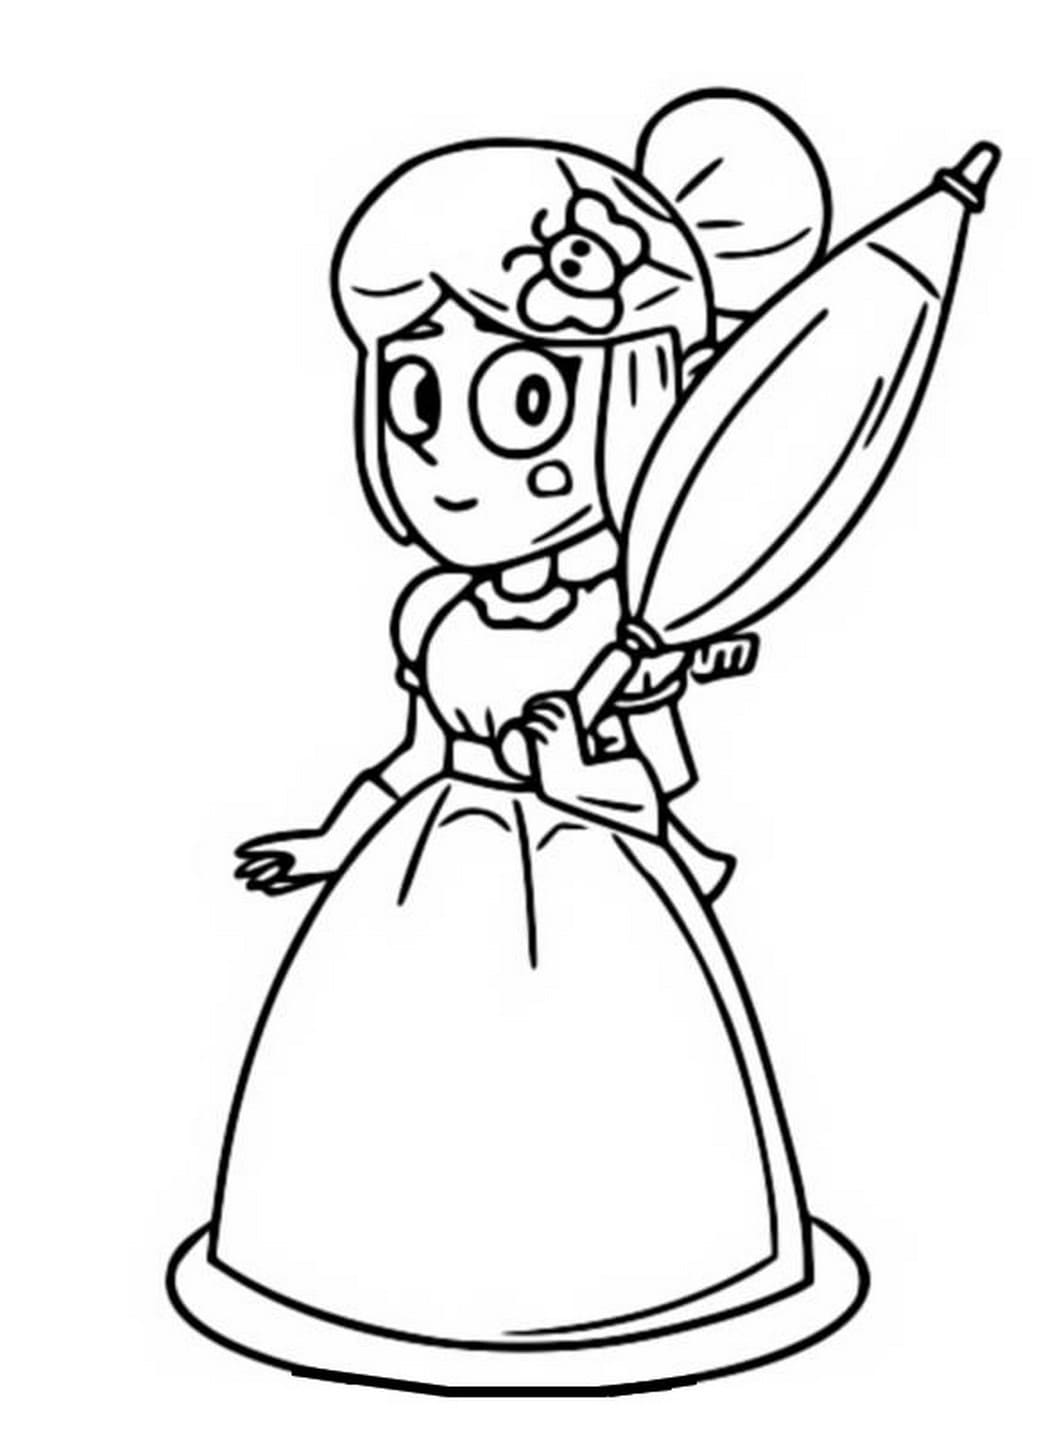 coloring pages with stars brawl stars coloring pages print them for free with stars pages coloring